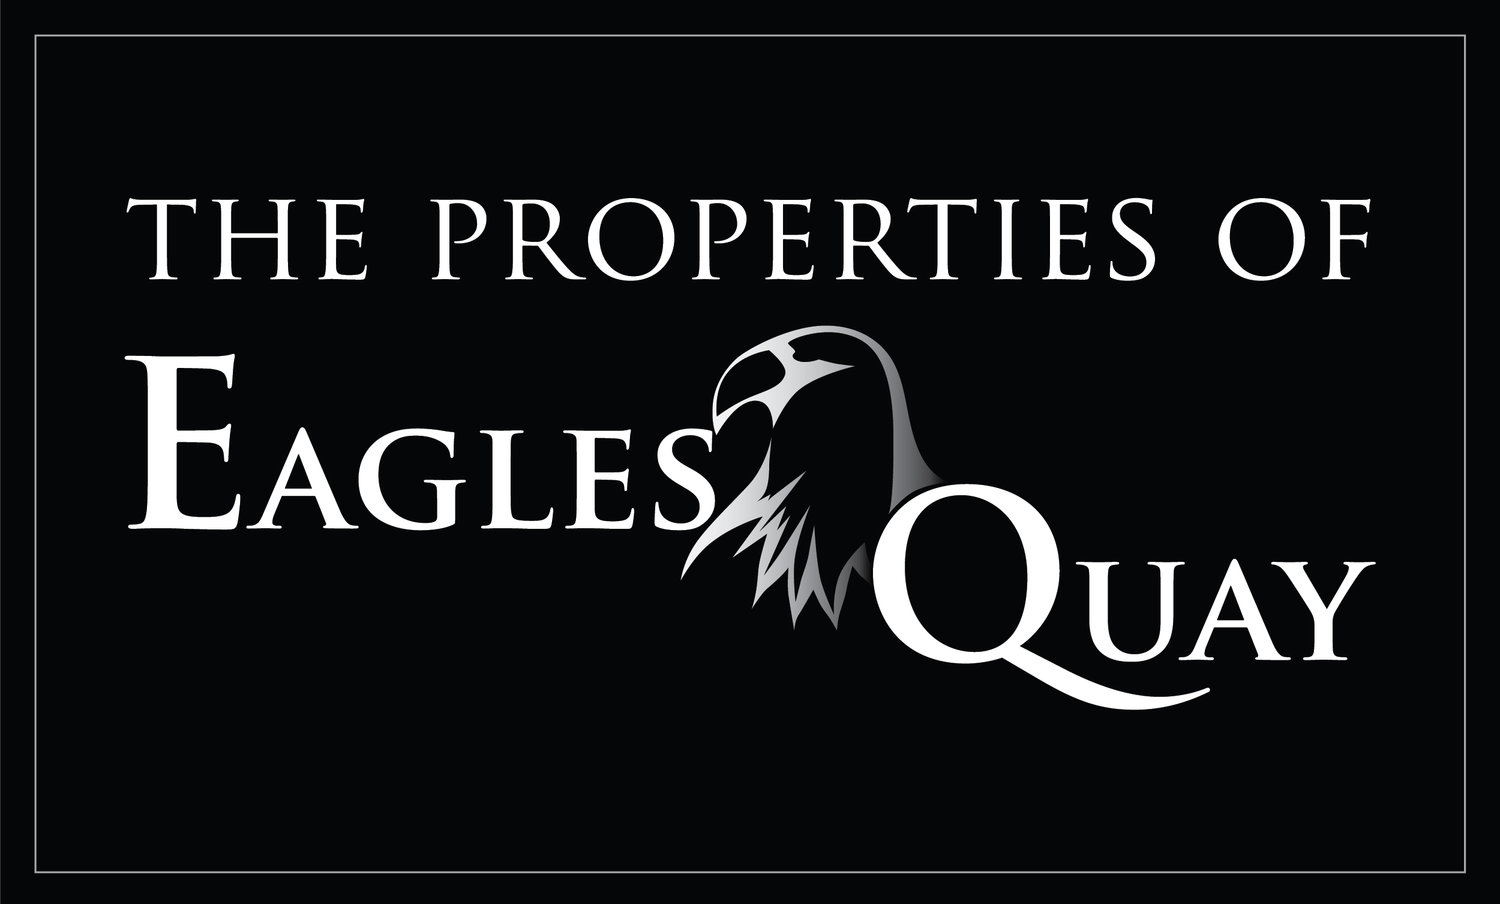 The Properties of Eagles Quay